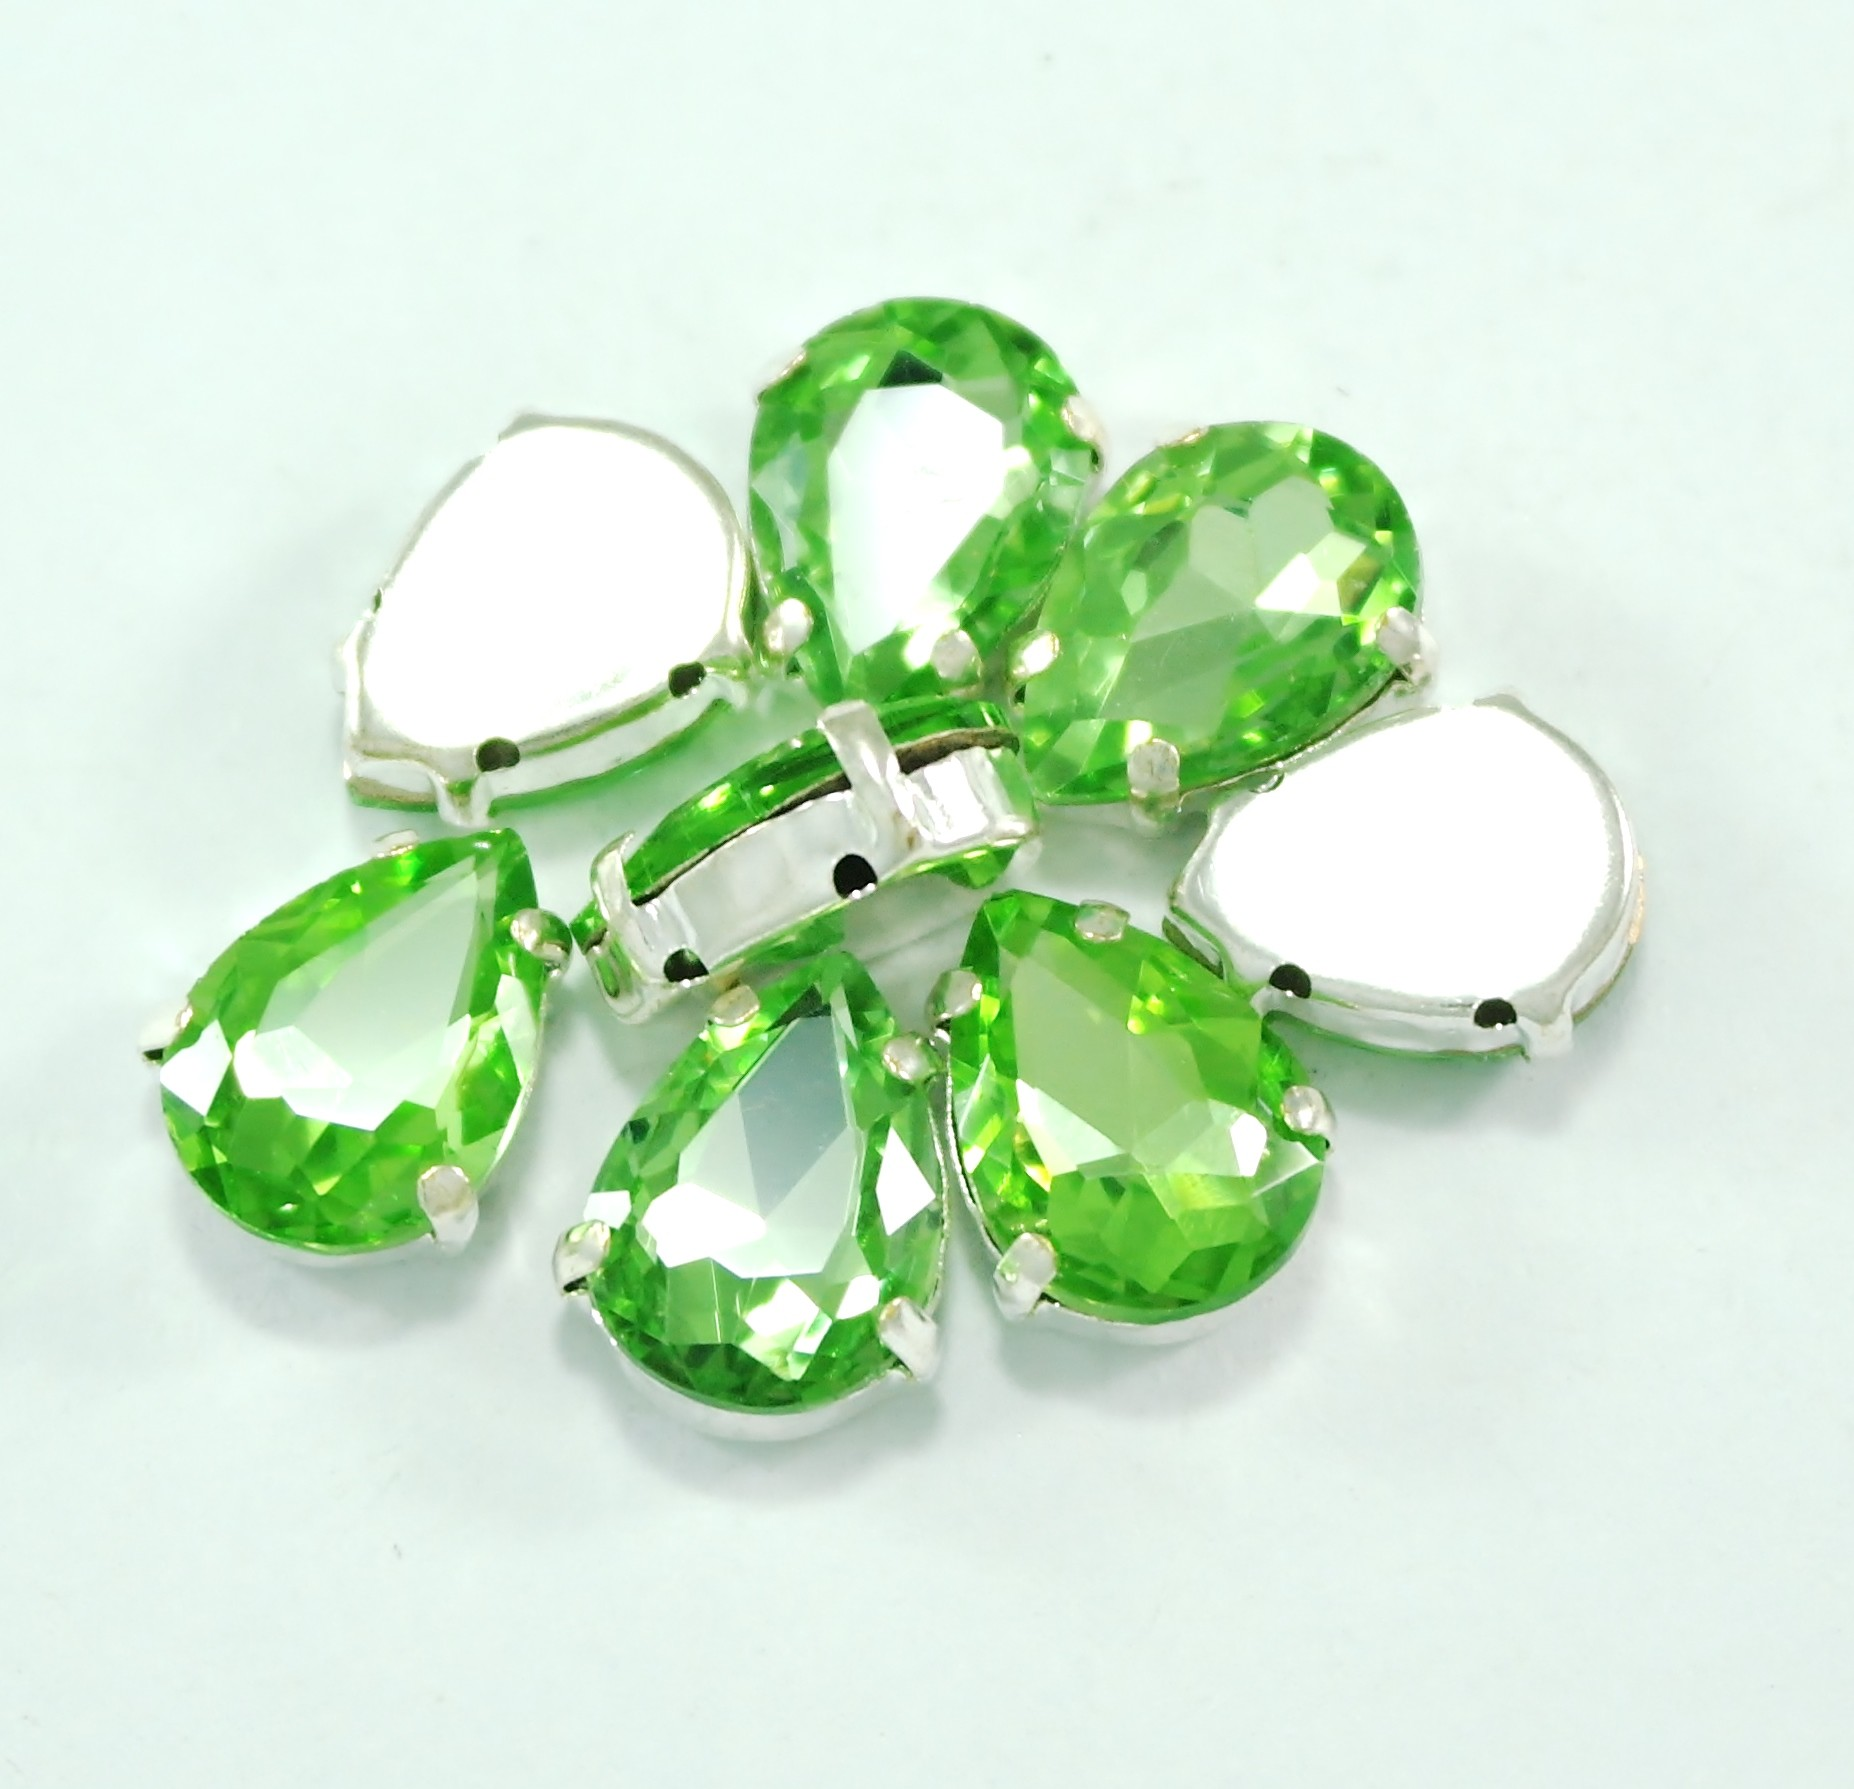 GLASS BEADS - PERIDOT TEAR DROP (T6)